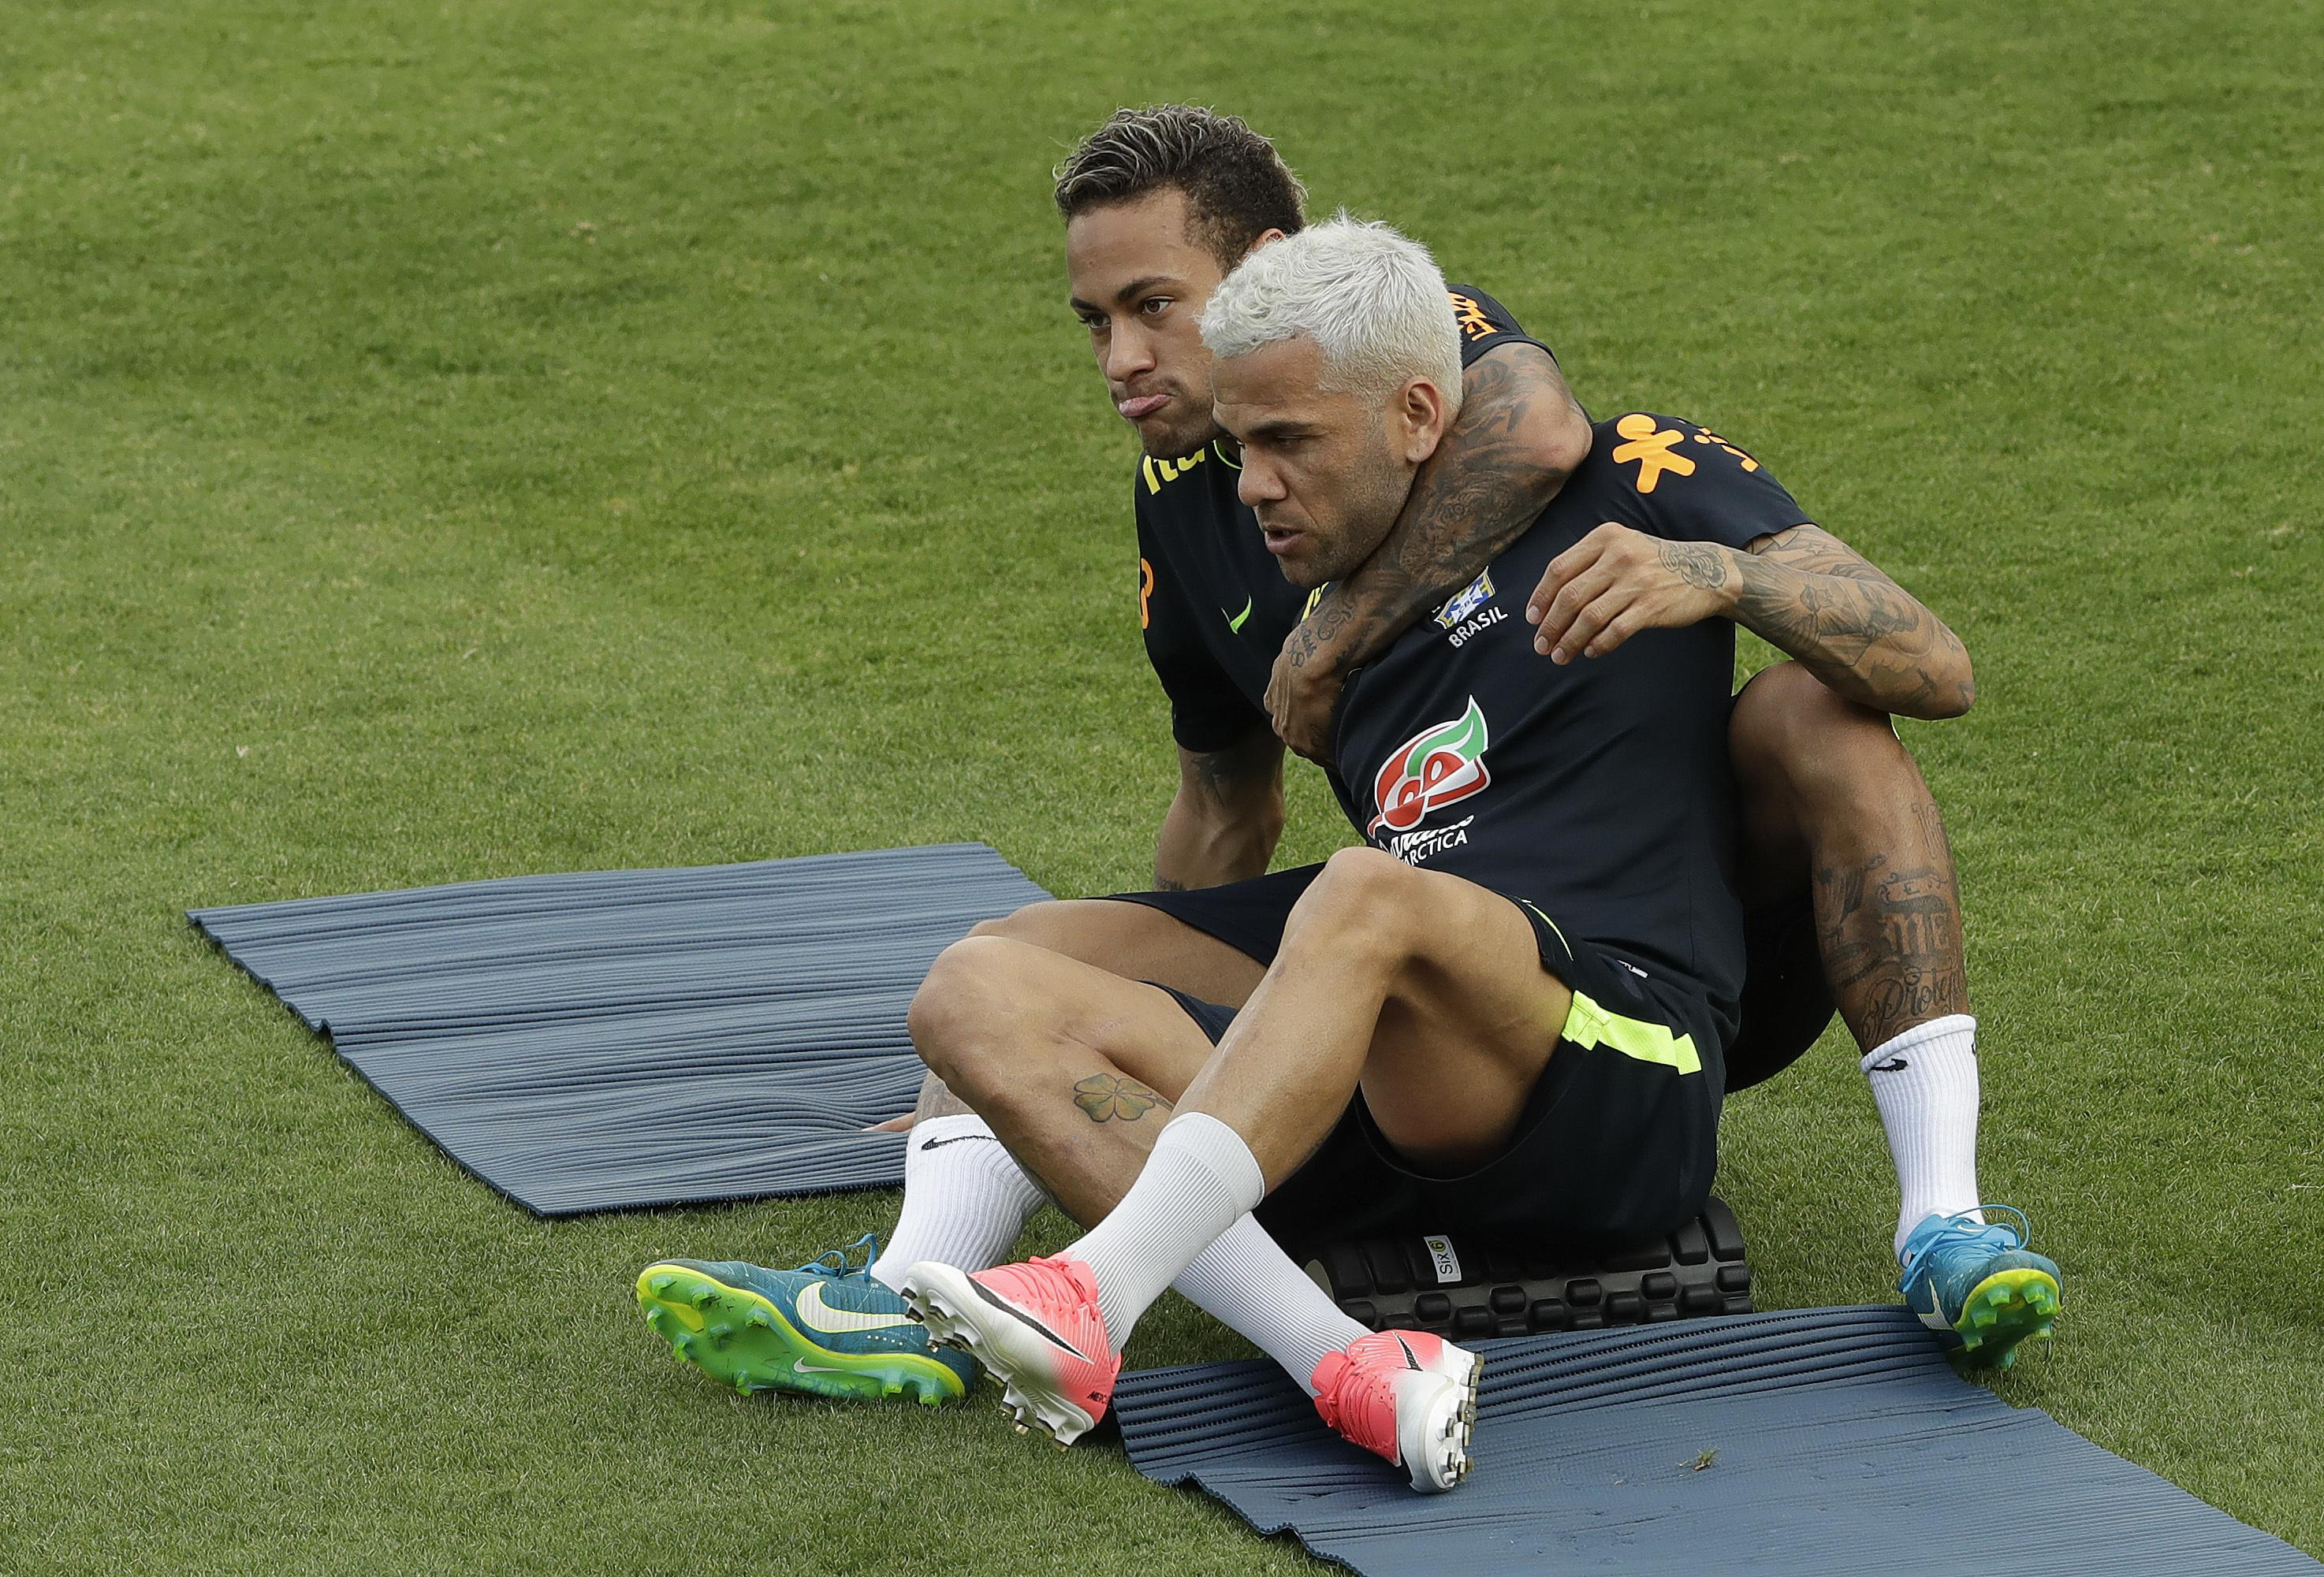 Brazil's Neymar puts Dani Alves in a headlock during a training session in Brazil. the PSG teammates have a great rapport